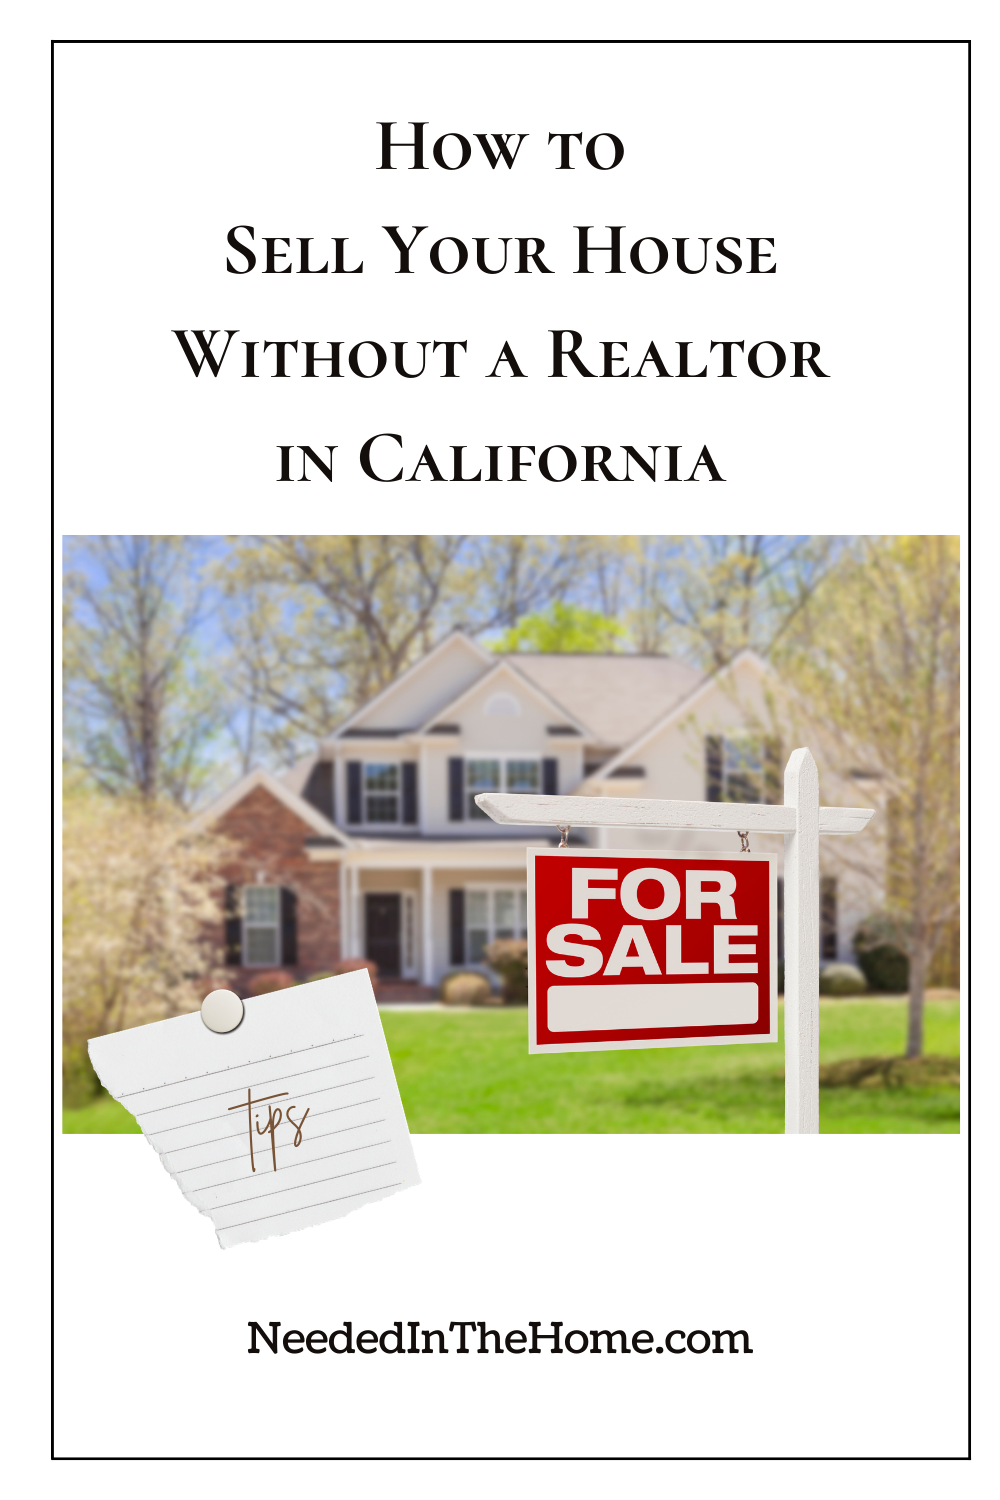 pinterest-pin-description how to sell your house without a realtor in ca two story home for sale sign post it tips neededinthehome